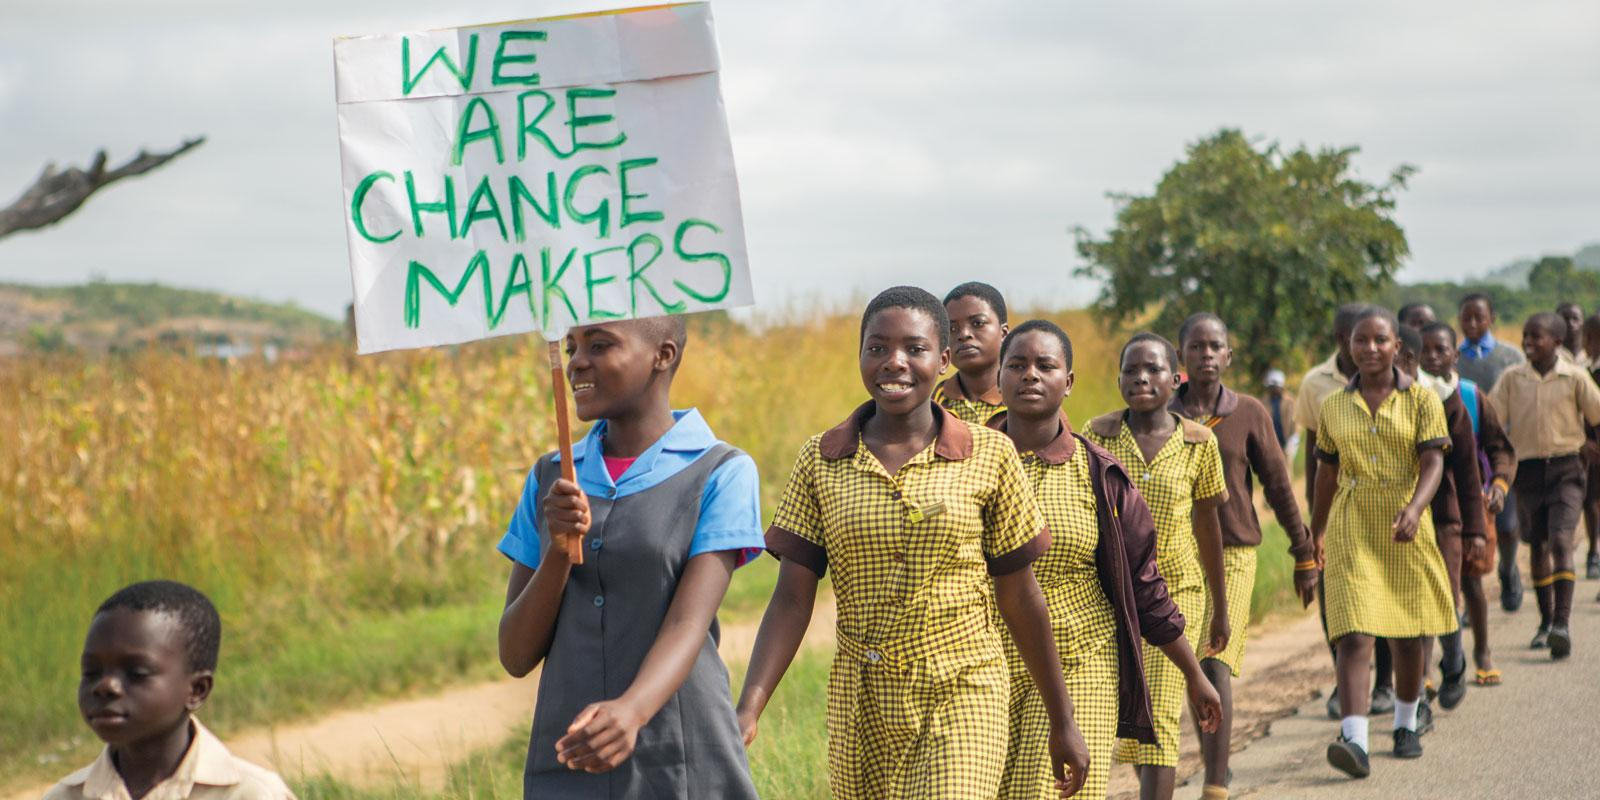 Gils and boys marching on country road with sign: We are changemakers